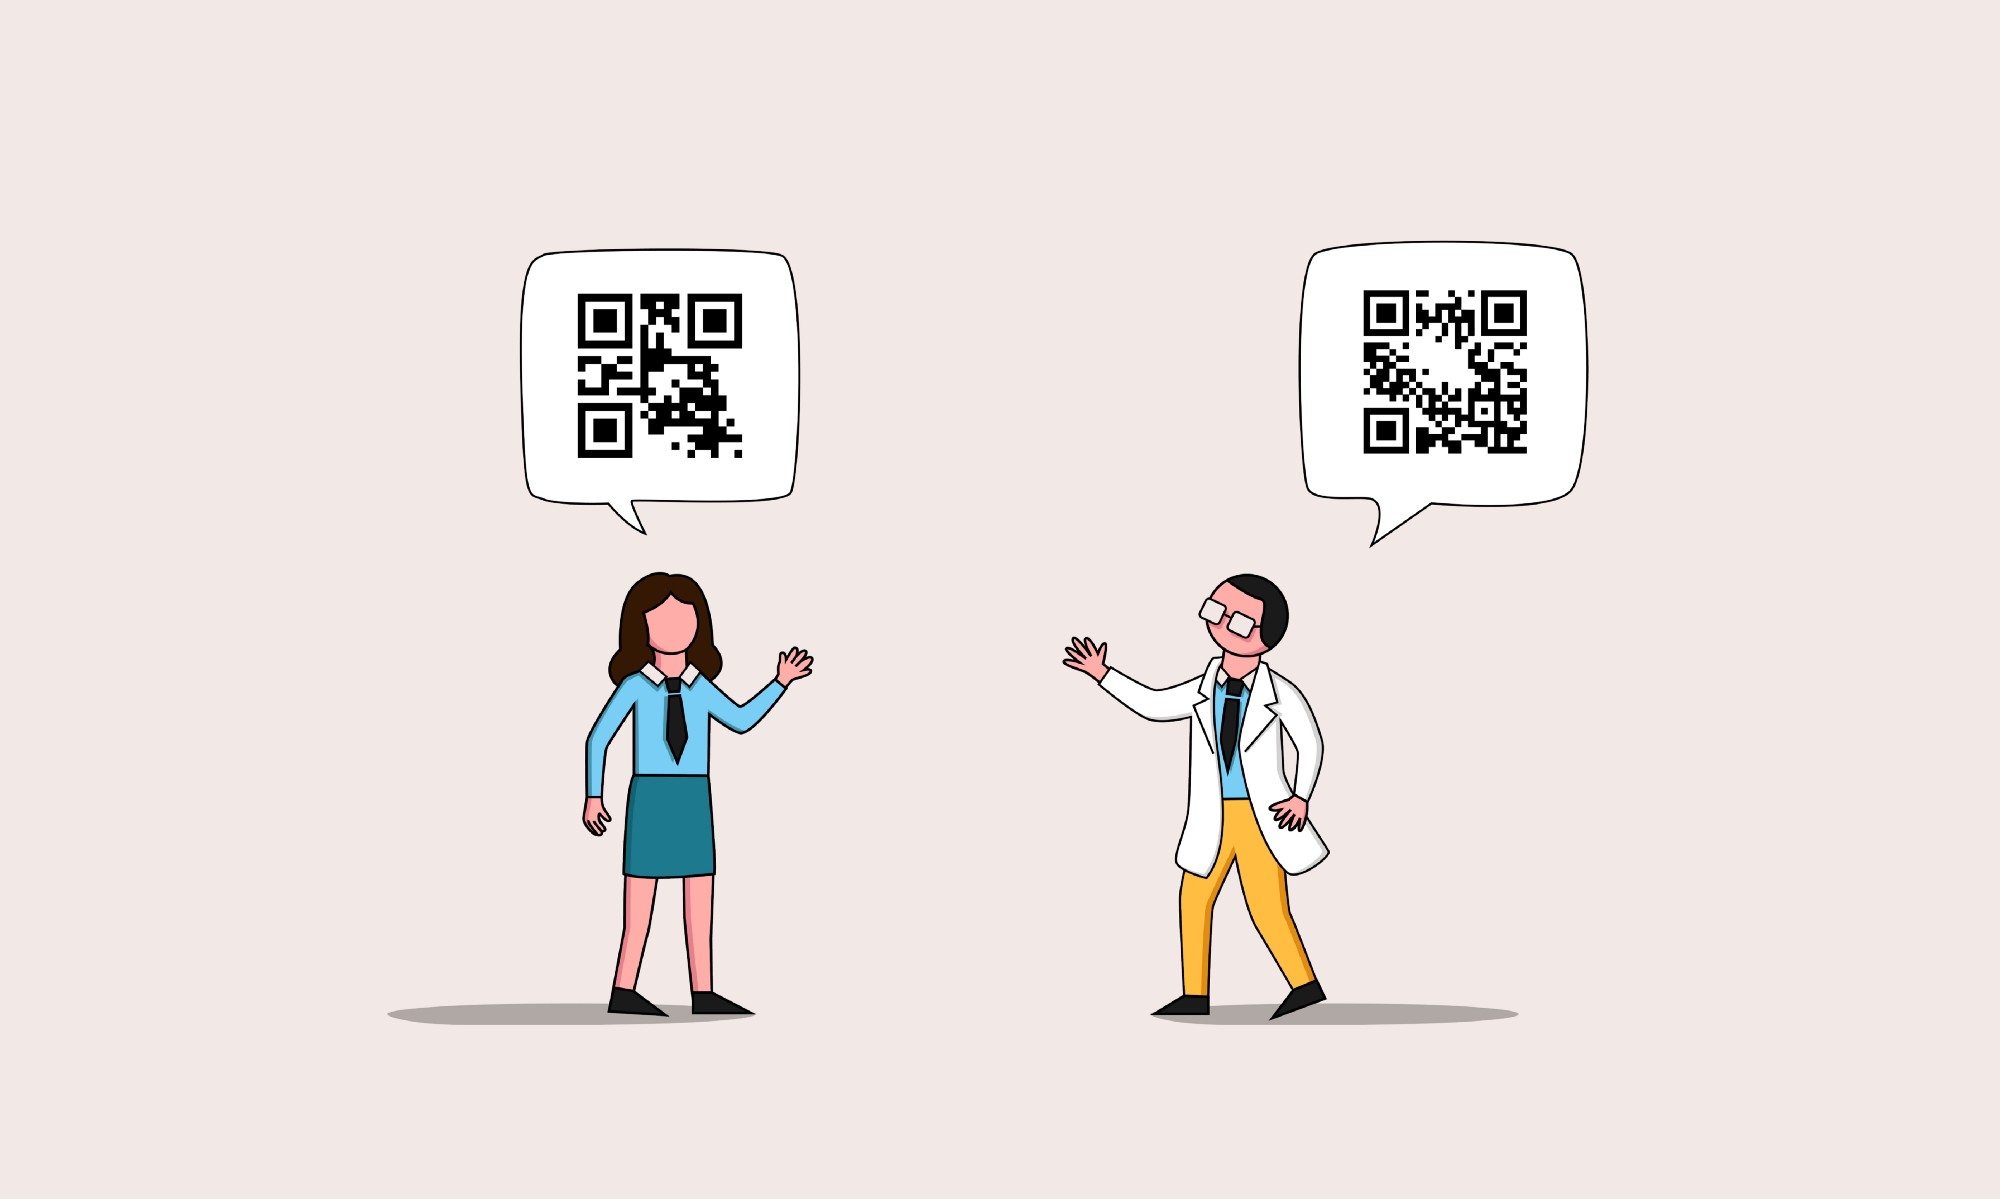 An illustration of two coworkers waving with speech bubbles over their heads. Each speech bubble has a different code.